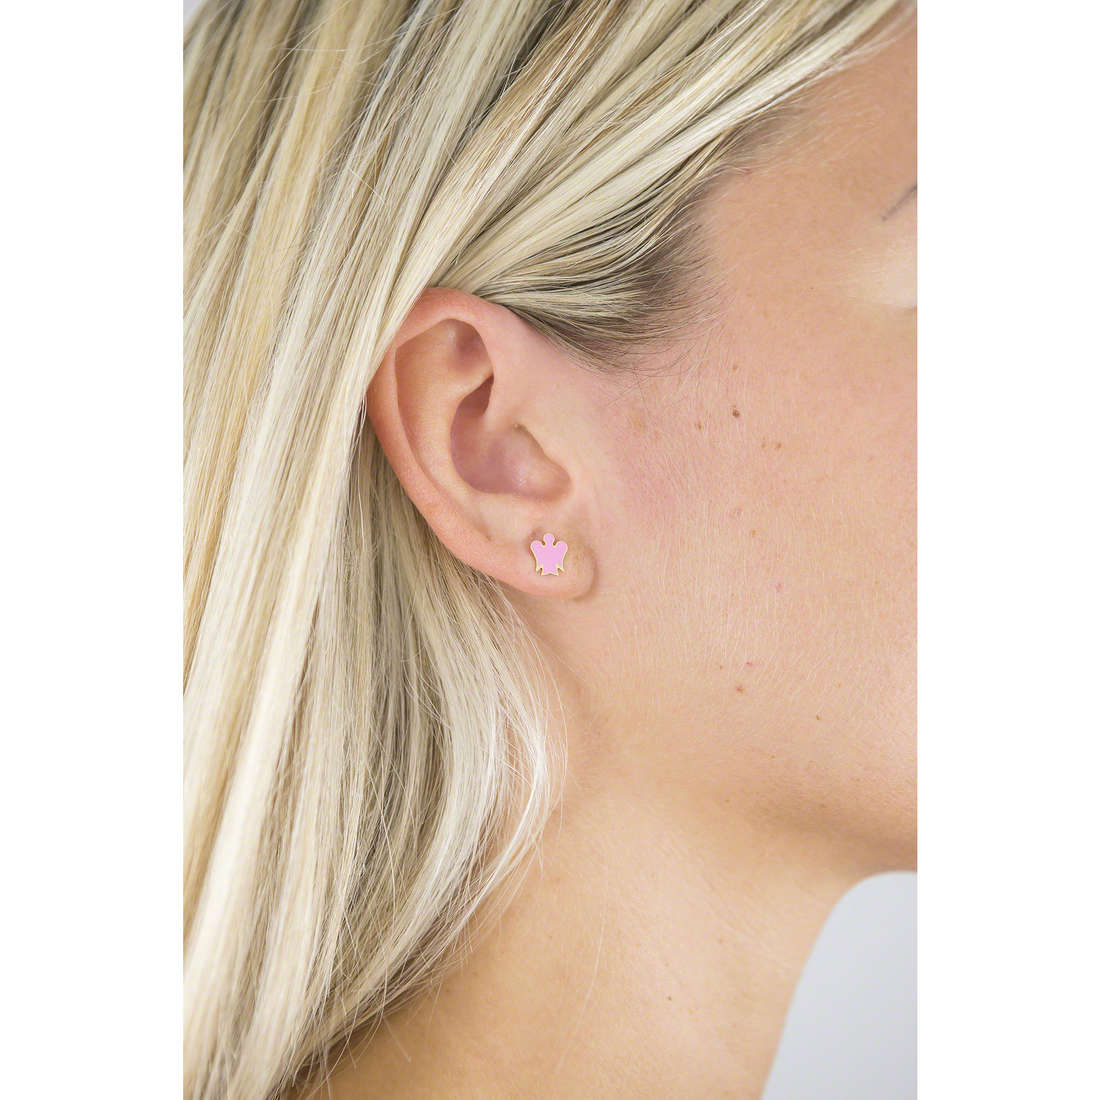 Giannotti boucles d'oreille Angeli femme NKT209 photo wearing